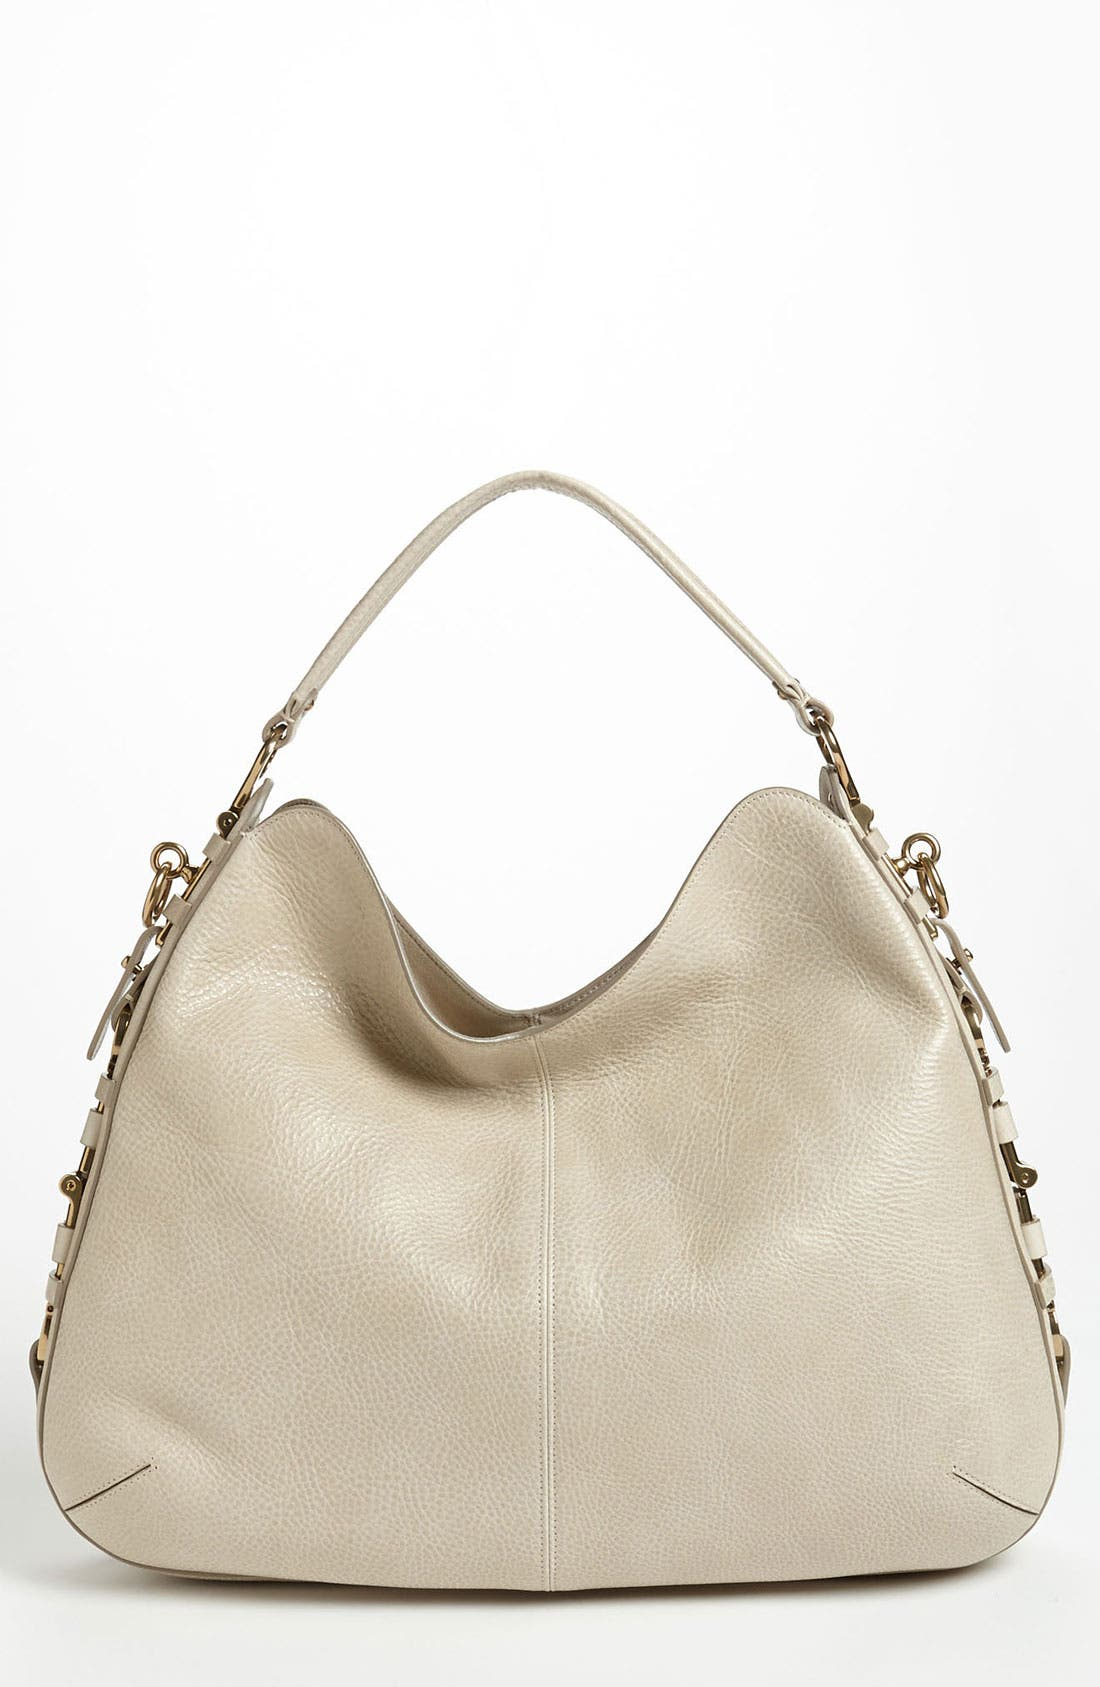 Main Image - Salvatore Ferragamo 'Fergie - Small' Hobo